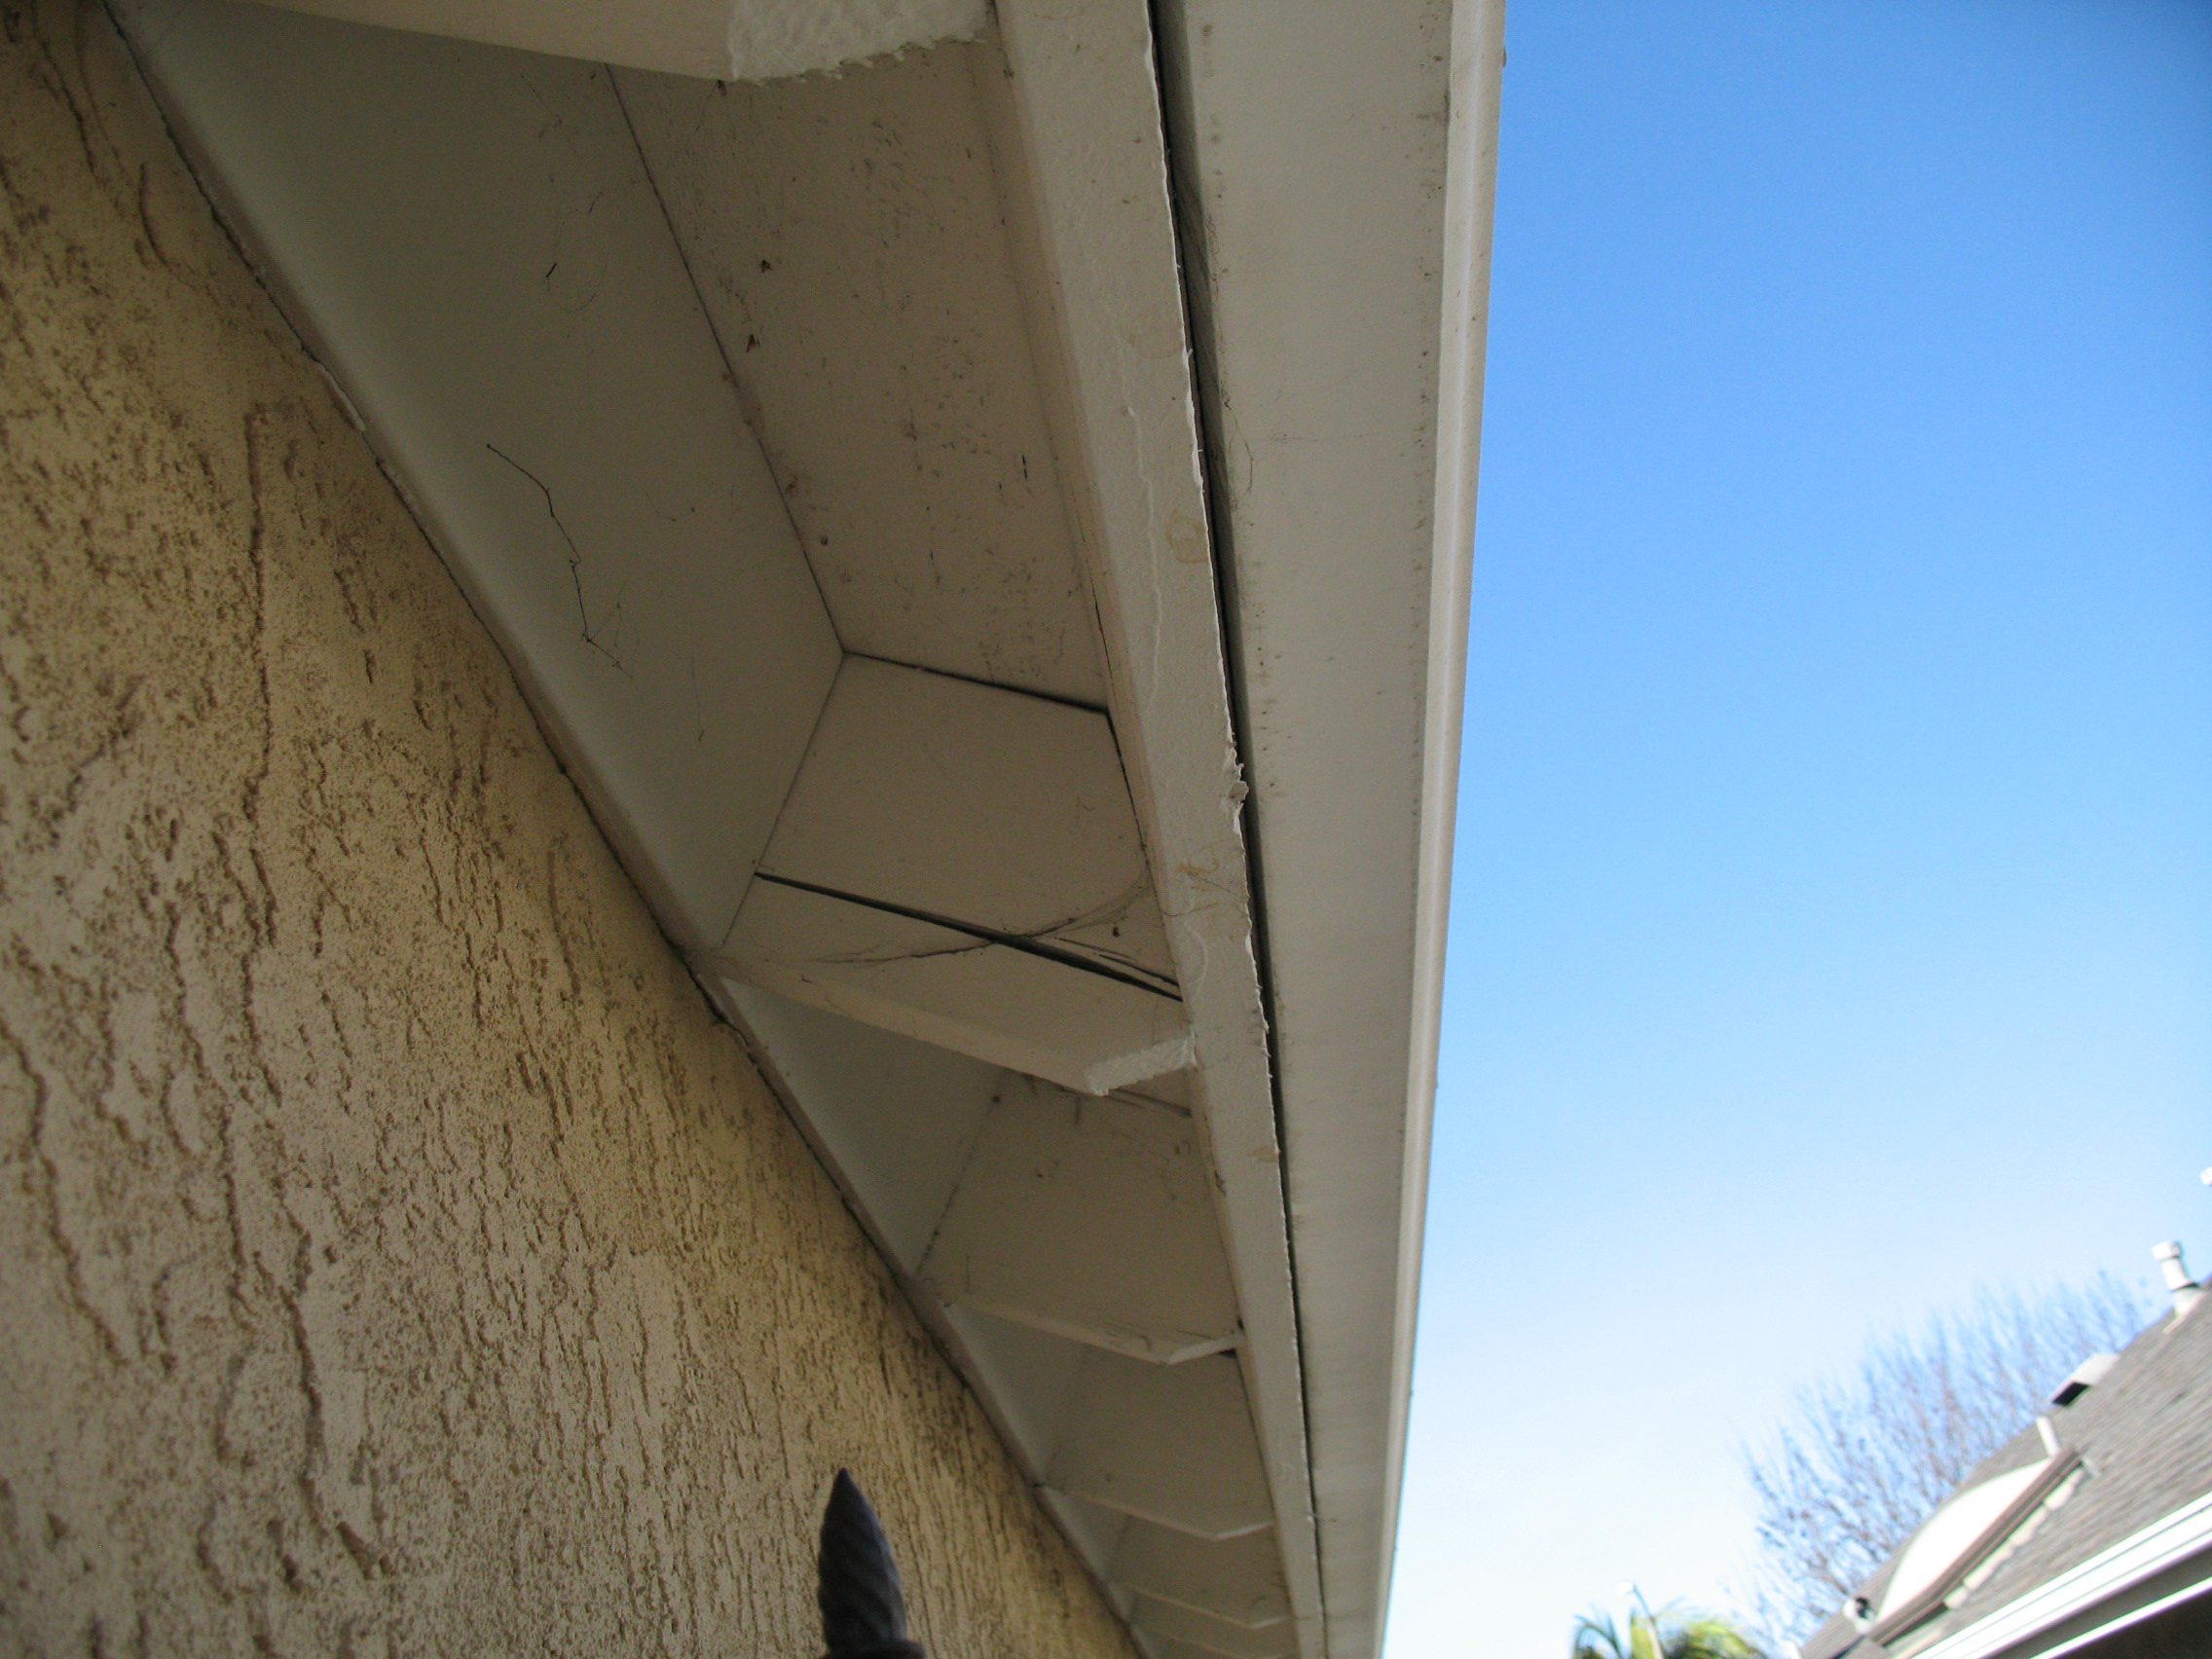 Siding Trim And Roof Overhang Termite Damage Pictures